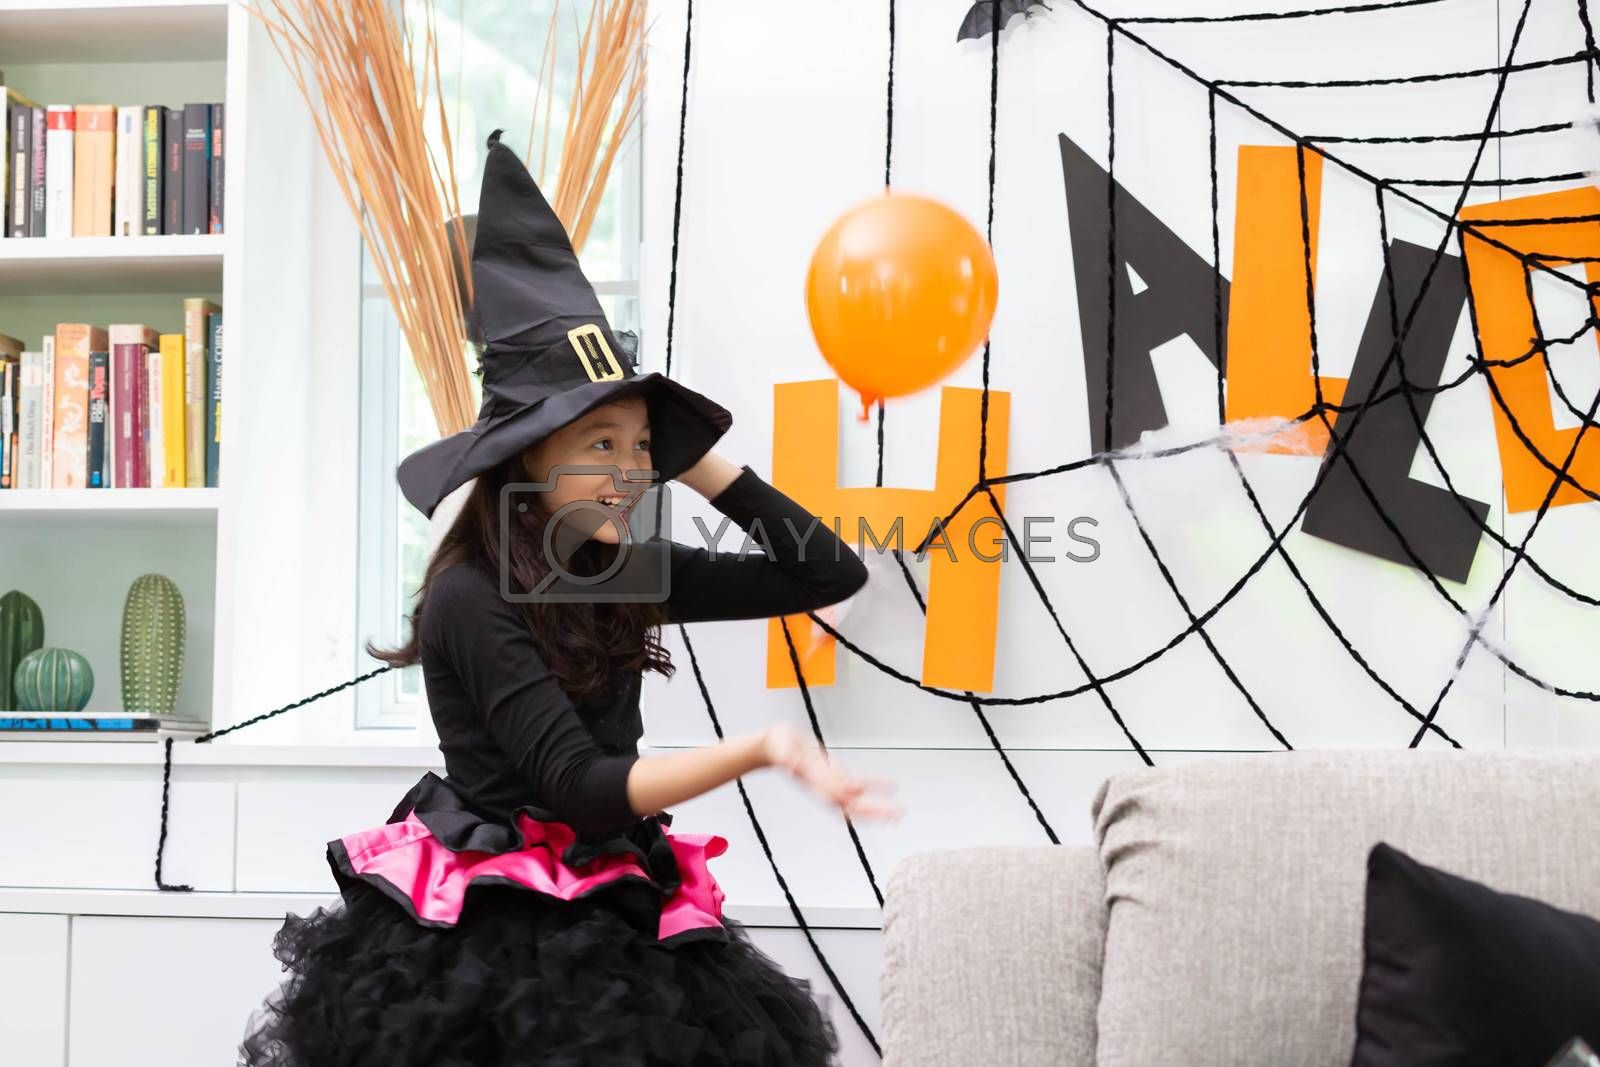 Happy Halloween, a girl prepare the colorful balloon in decorated house